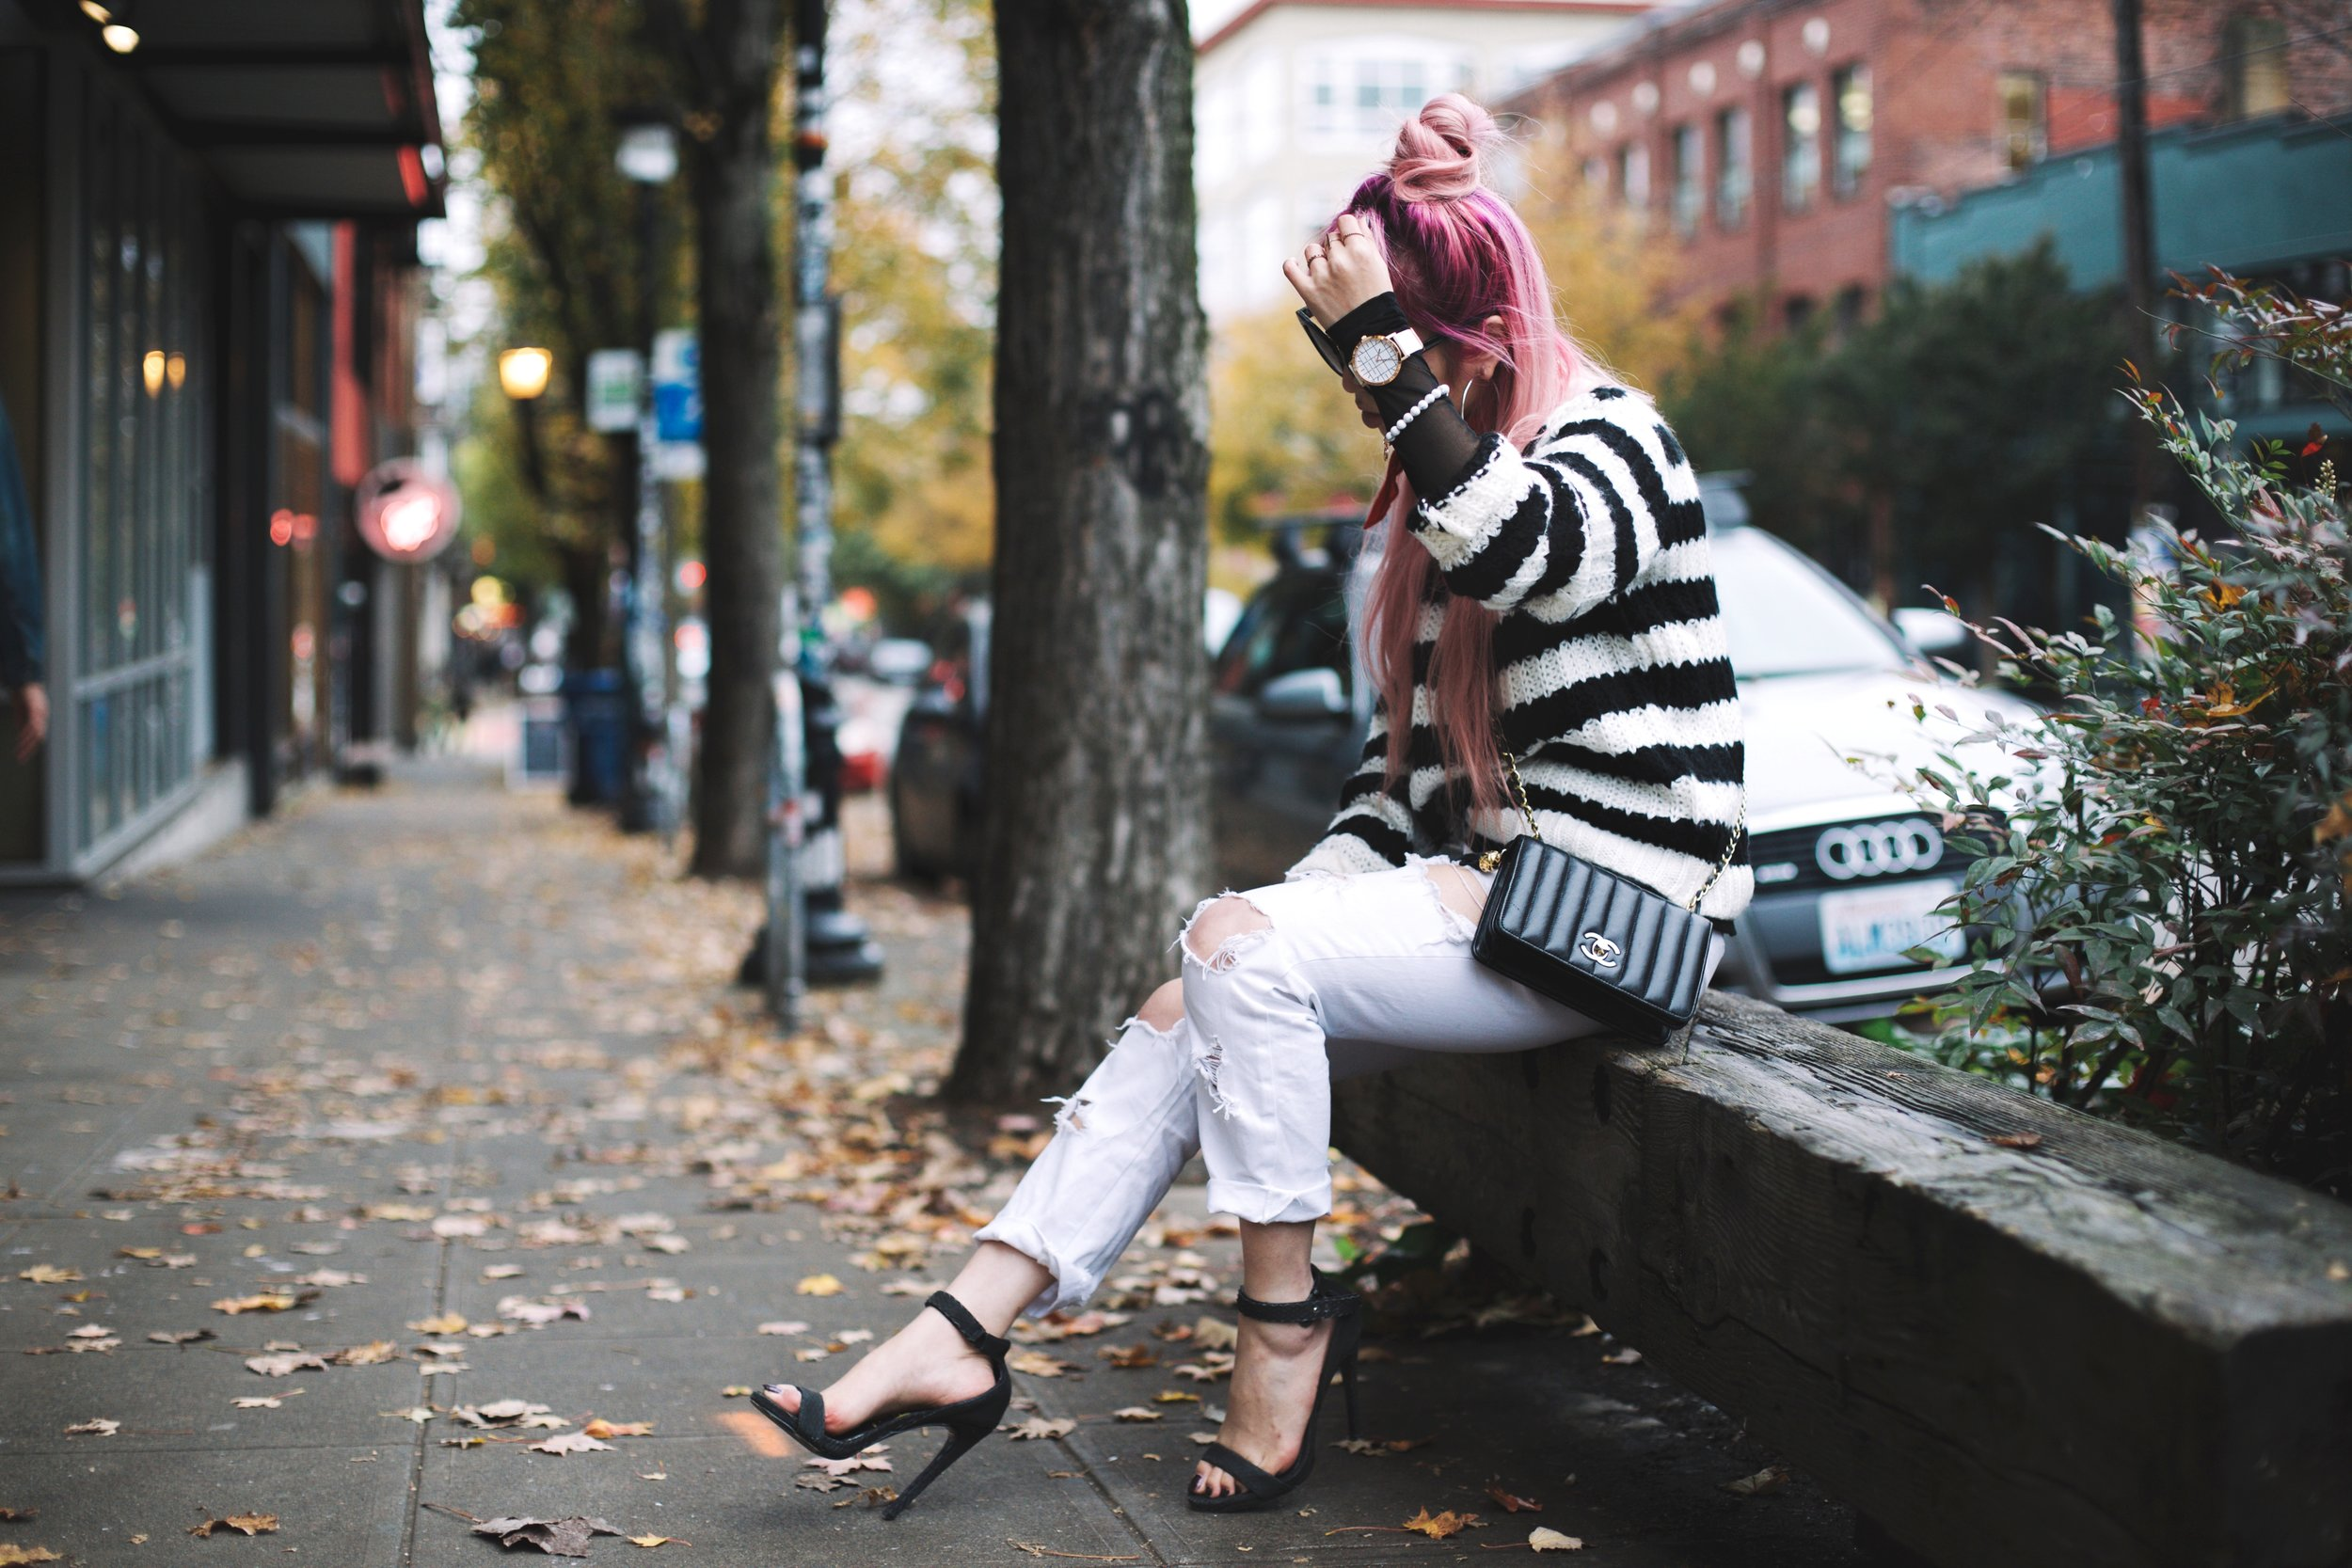 Urban Outfitters Sunglasses & Red bandana-Who What Wear Striped Crew Sweater-Target-Zara Distressed white boyfriend Jeans & Black Sheer Top-Vintage Chanel Crossbody Bag-ASOS Ankle Strap Sandals-Christian Paul Grid White Watch-Aika's Love Closet-Seattle Fashion Blogger-Japanese-Pink Hair-Half Top Knot Hair 7